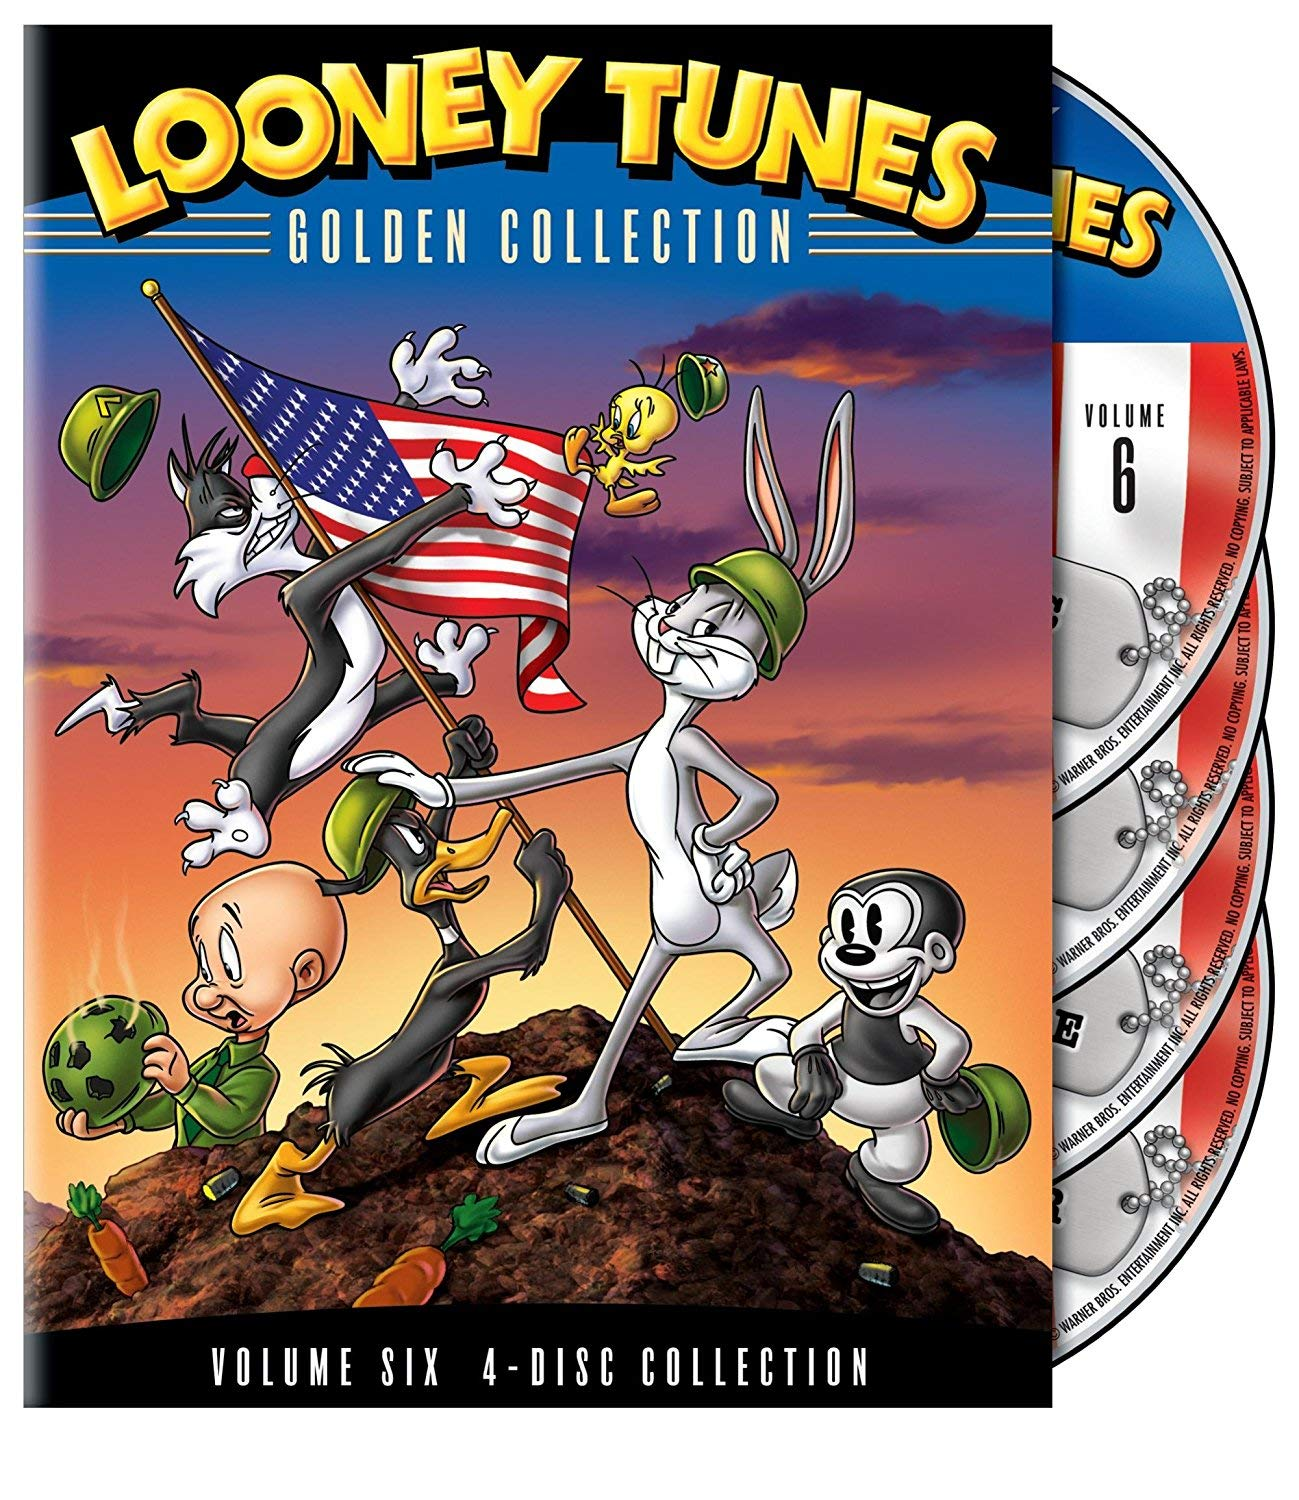 Looney Tunes: Golden Collection, Vol. 6 Chuck Jones Warner Bros. Home Video 4167338 Cartoons & Animation